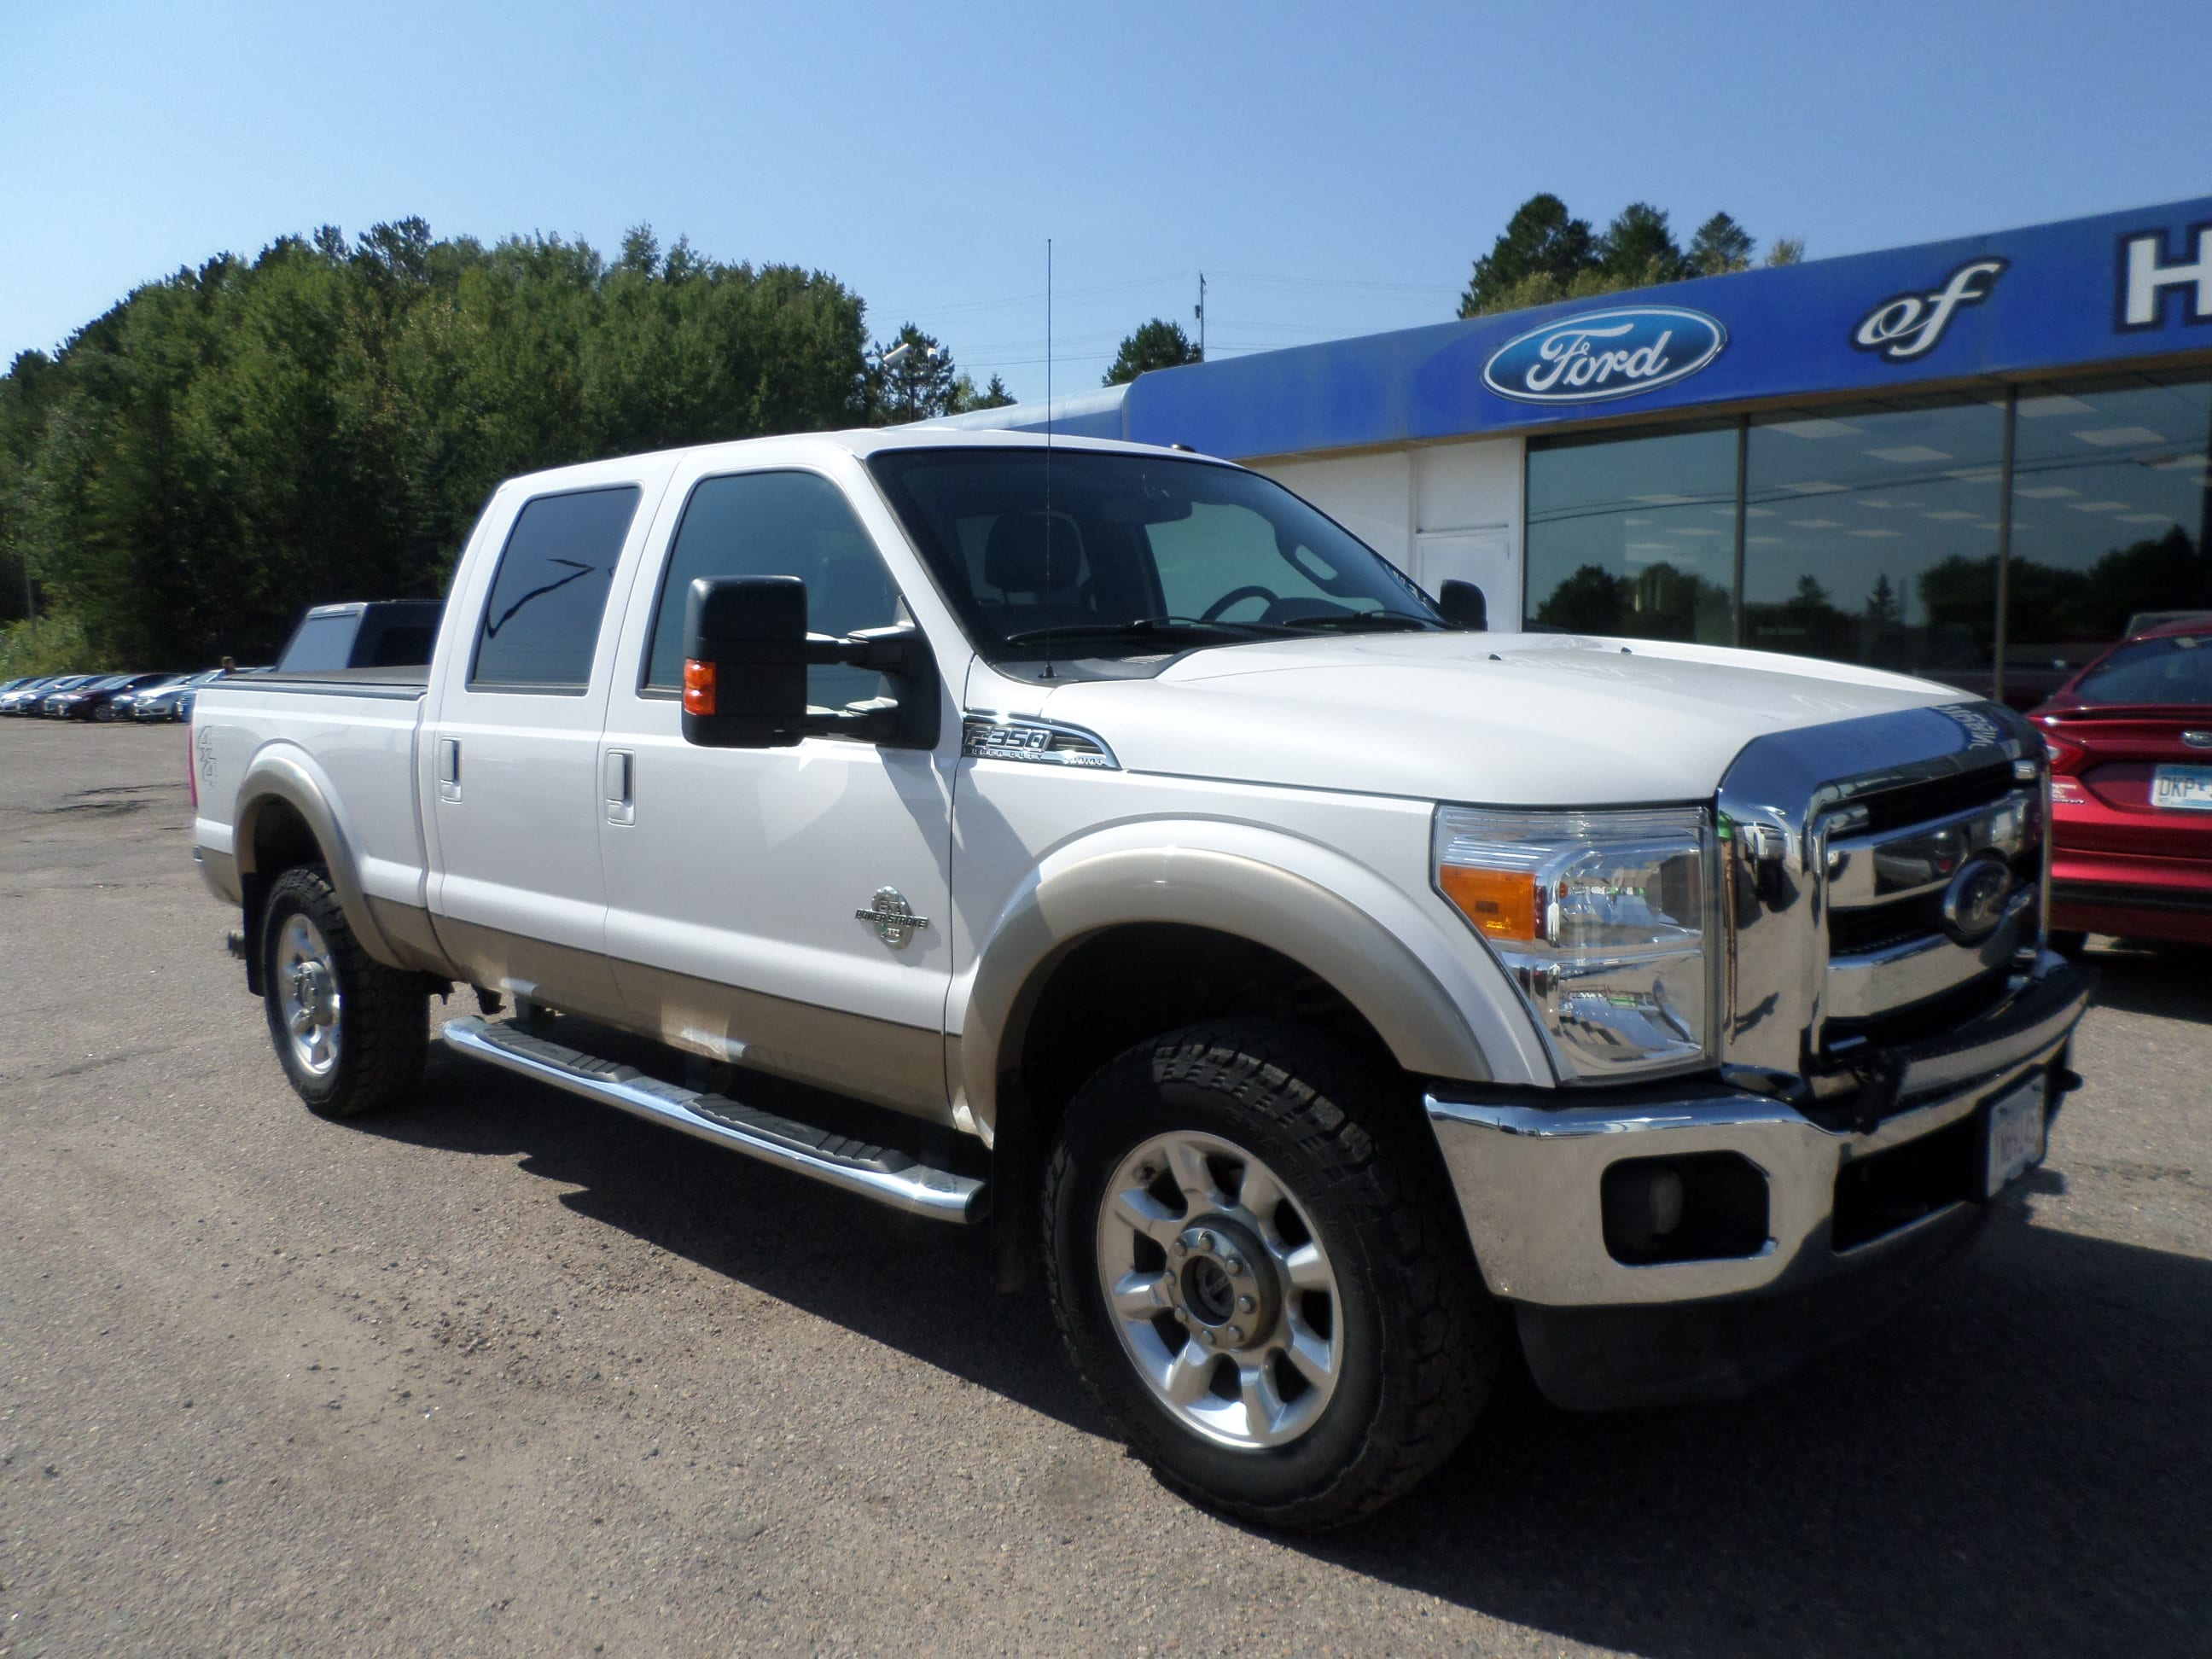 Used 2012 Ford F-350 Super Duty Lariat with VIN 1FT8W3BT2CEB58664 for sale in Hibbing, Minnesota